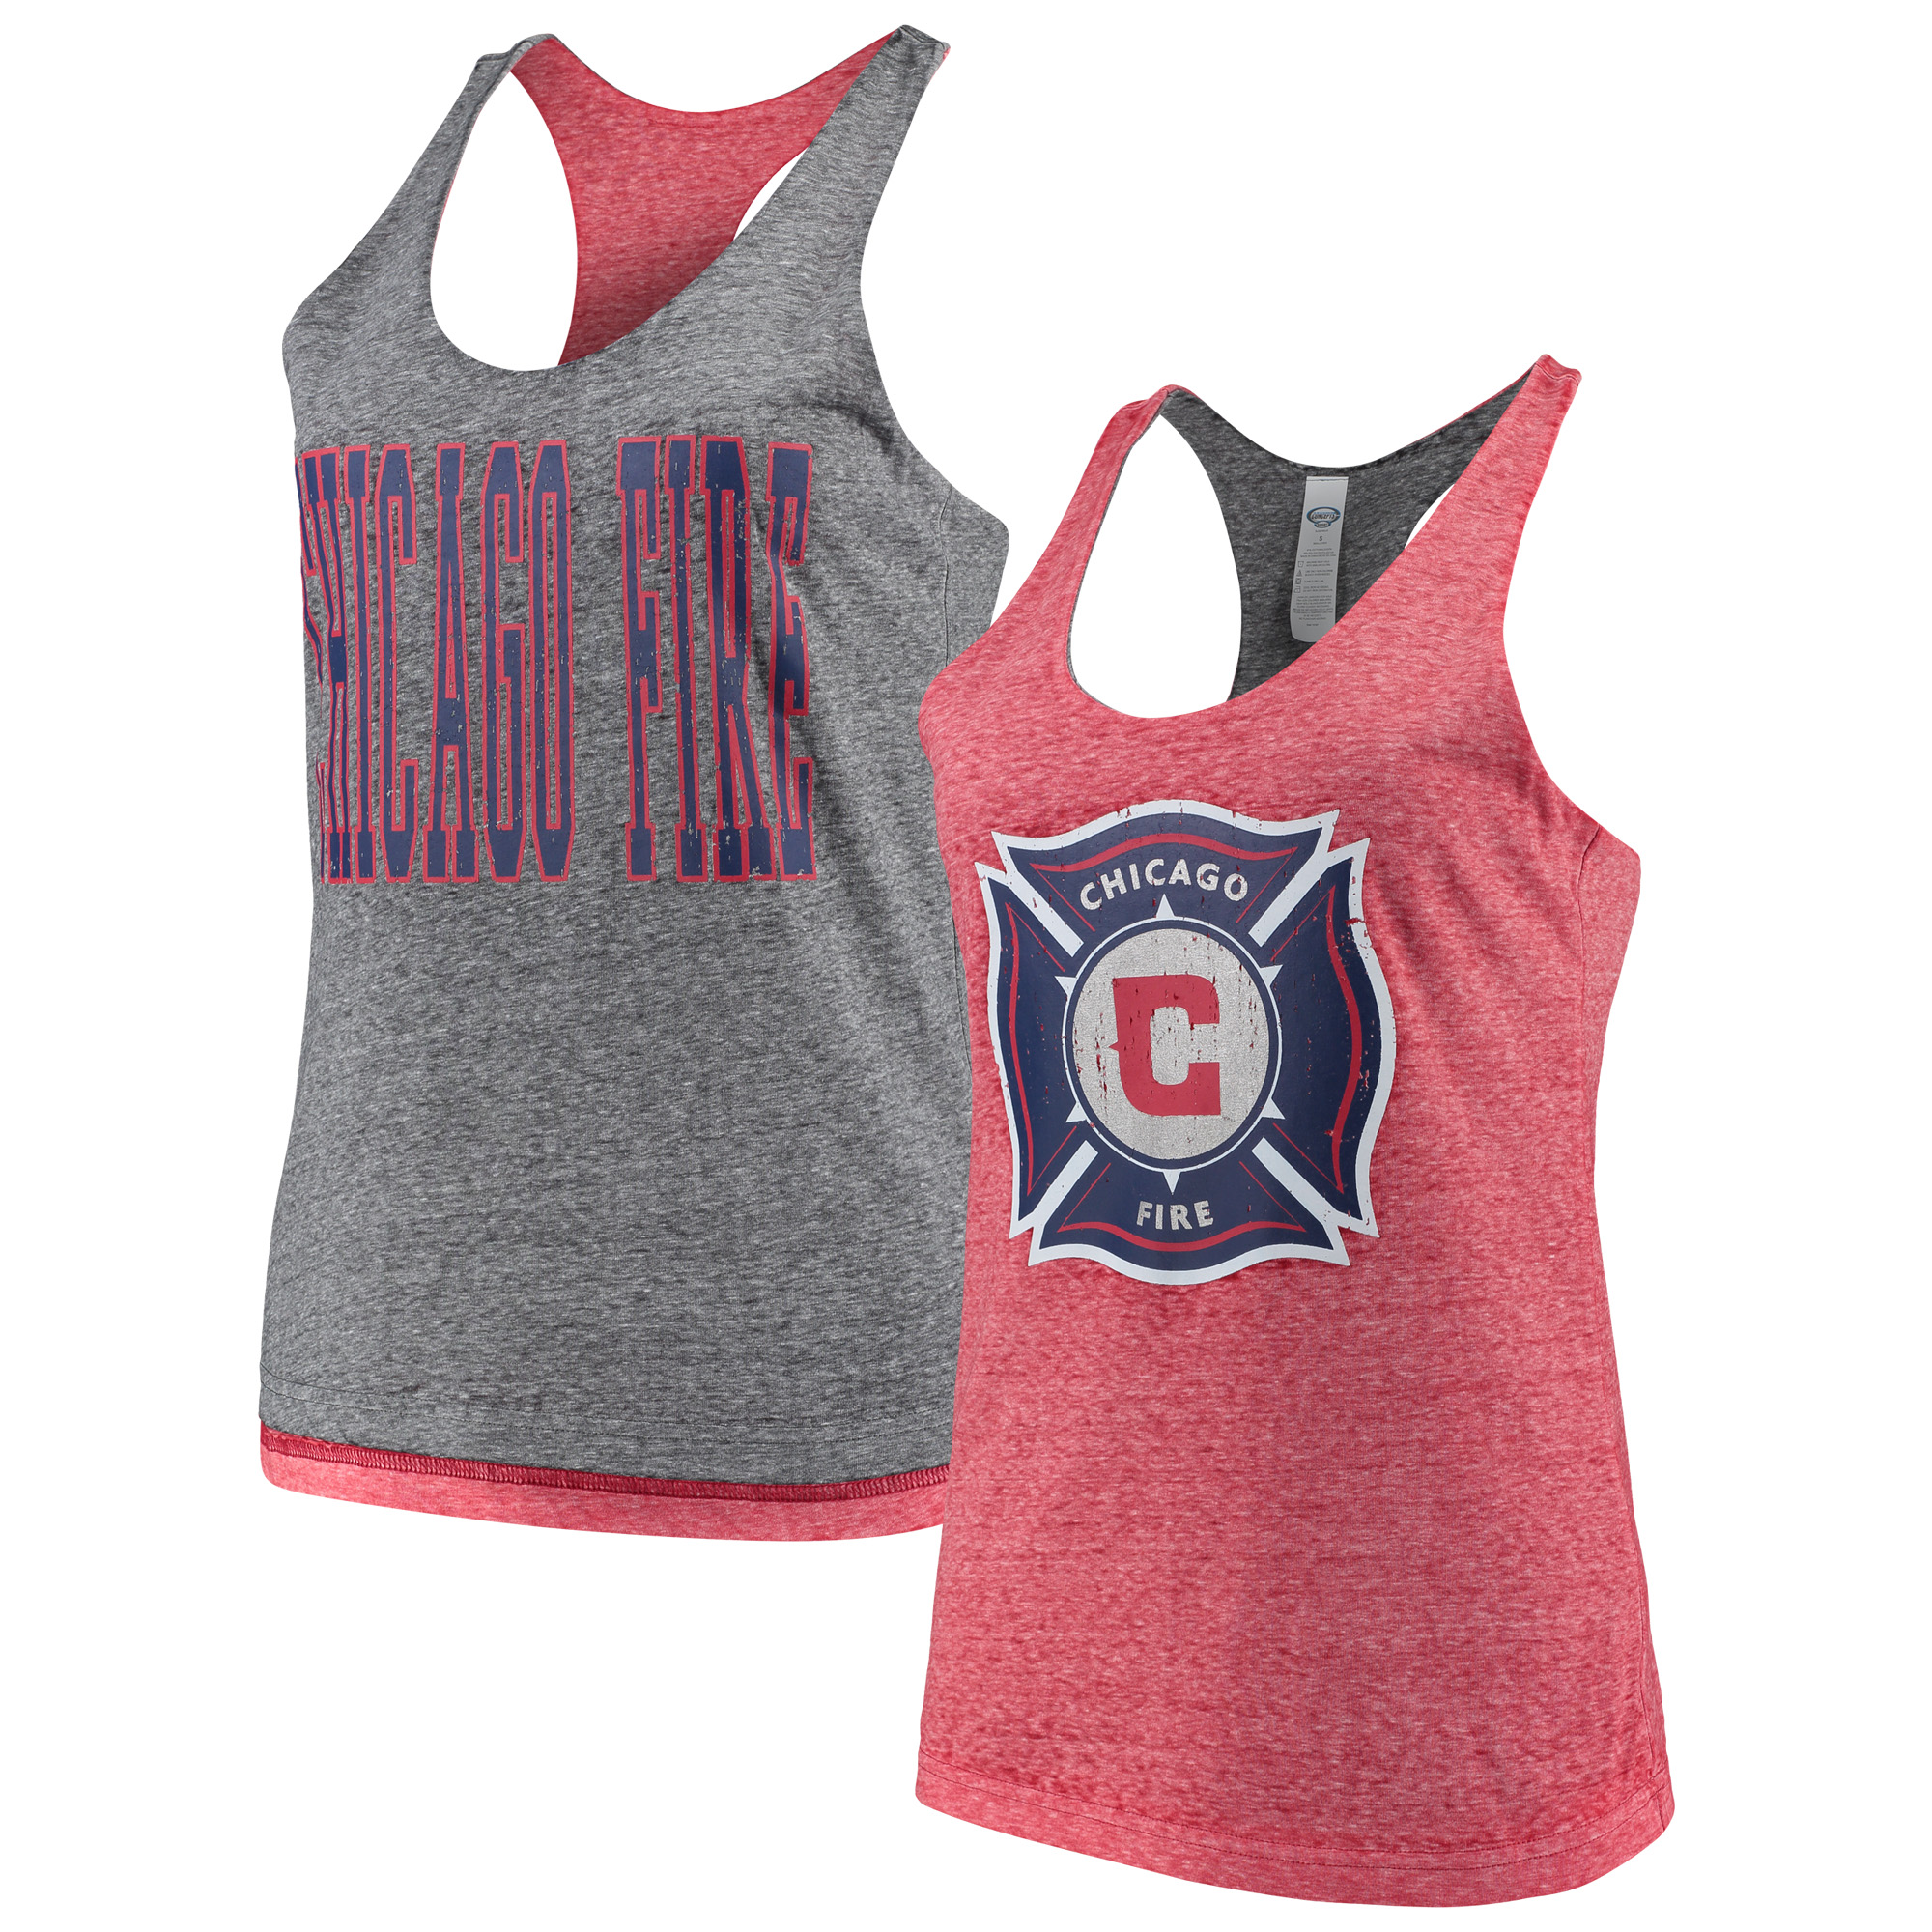 Chicago Fire Concepts Sport Women's Squad Reversible Tank Top - Red/Charcoal